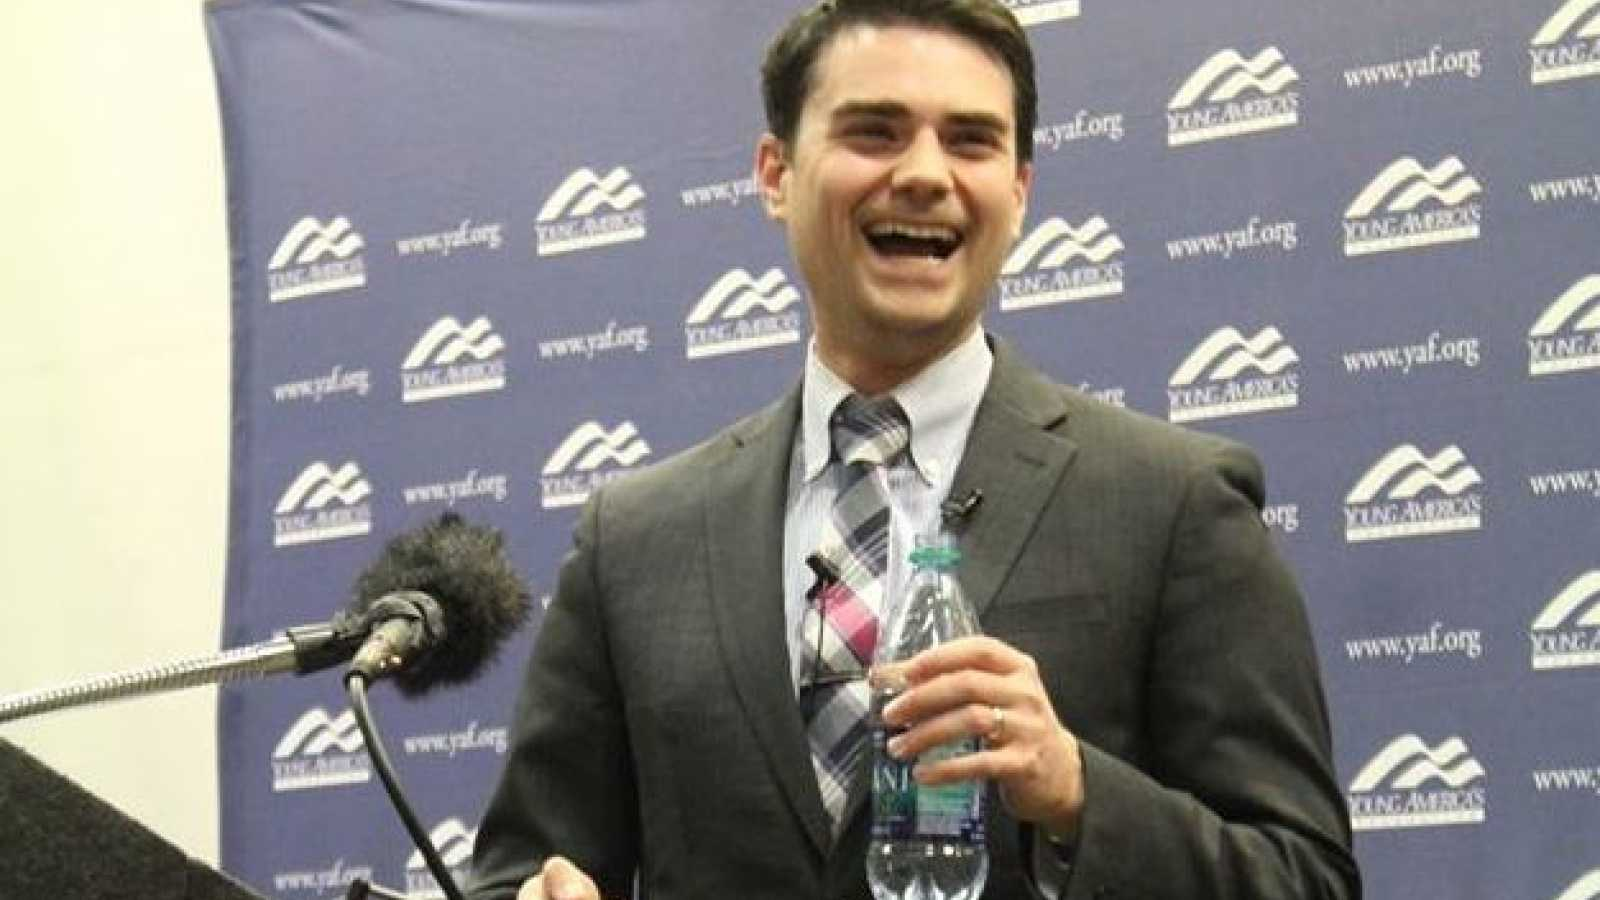 Image: Ben Shapiro brilliantly explains why transgenderism is a make believe illusion invented by liberals